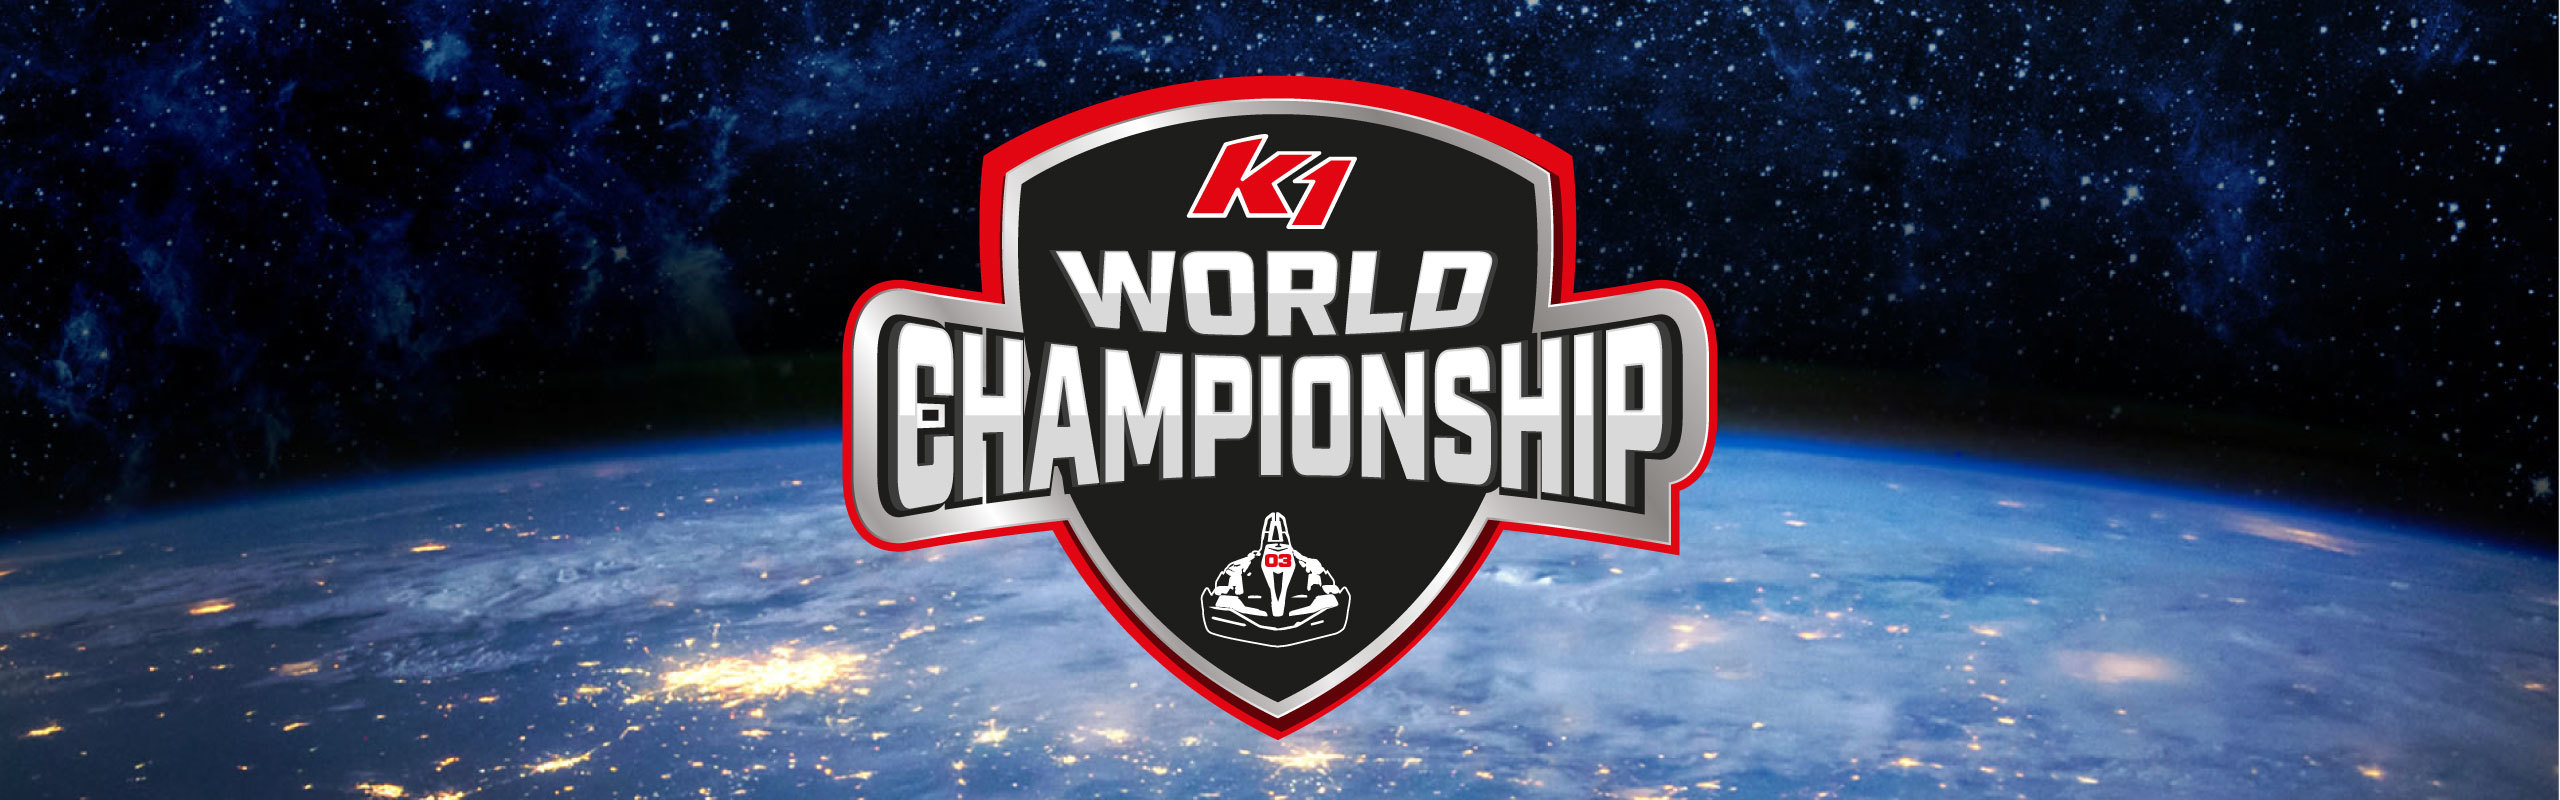 BANNER-BLOG-WORLD-CHAMPIONSHIP (1)